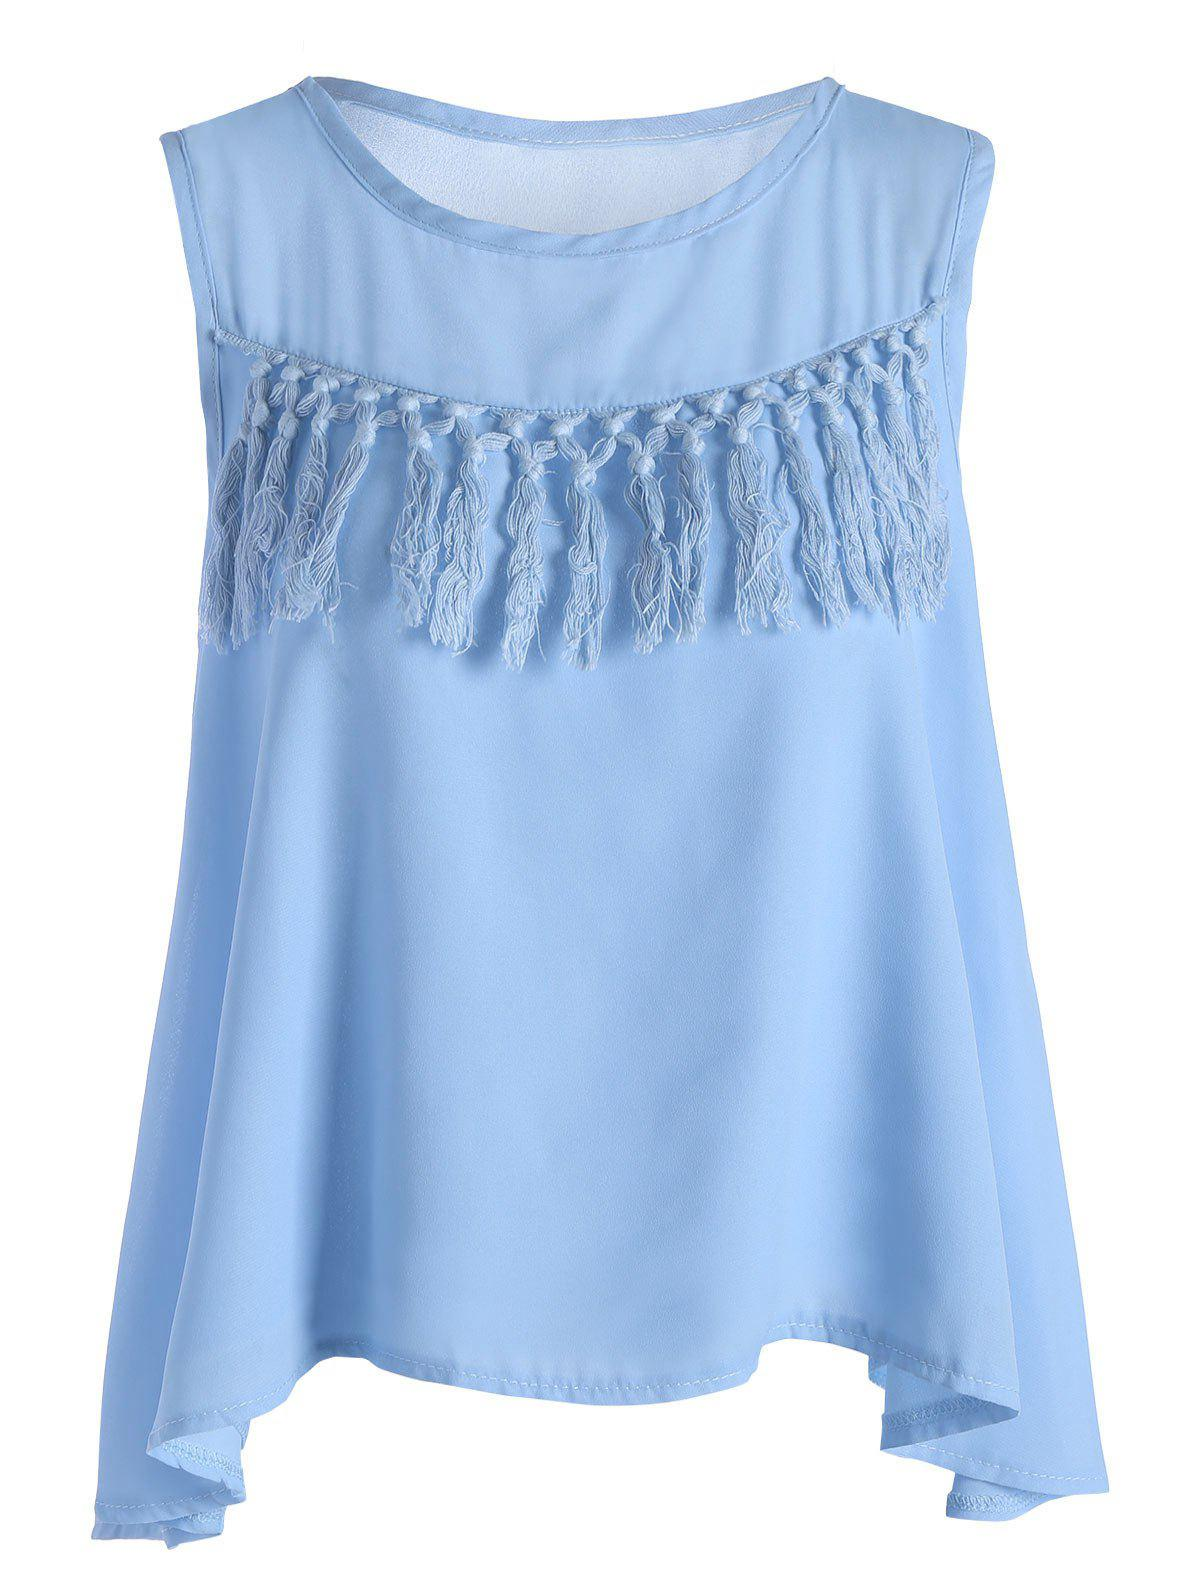 Tassel Chiffon Tank Top - BLUE XL